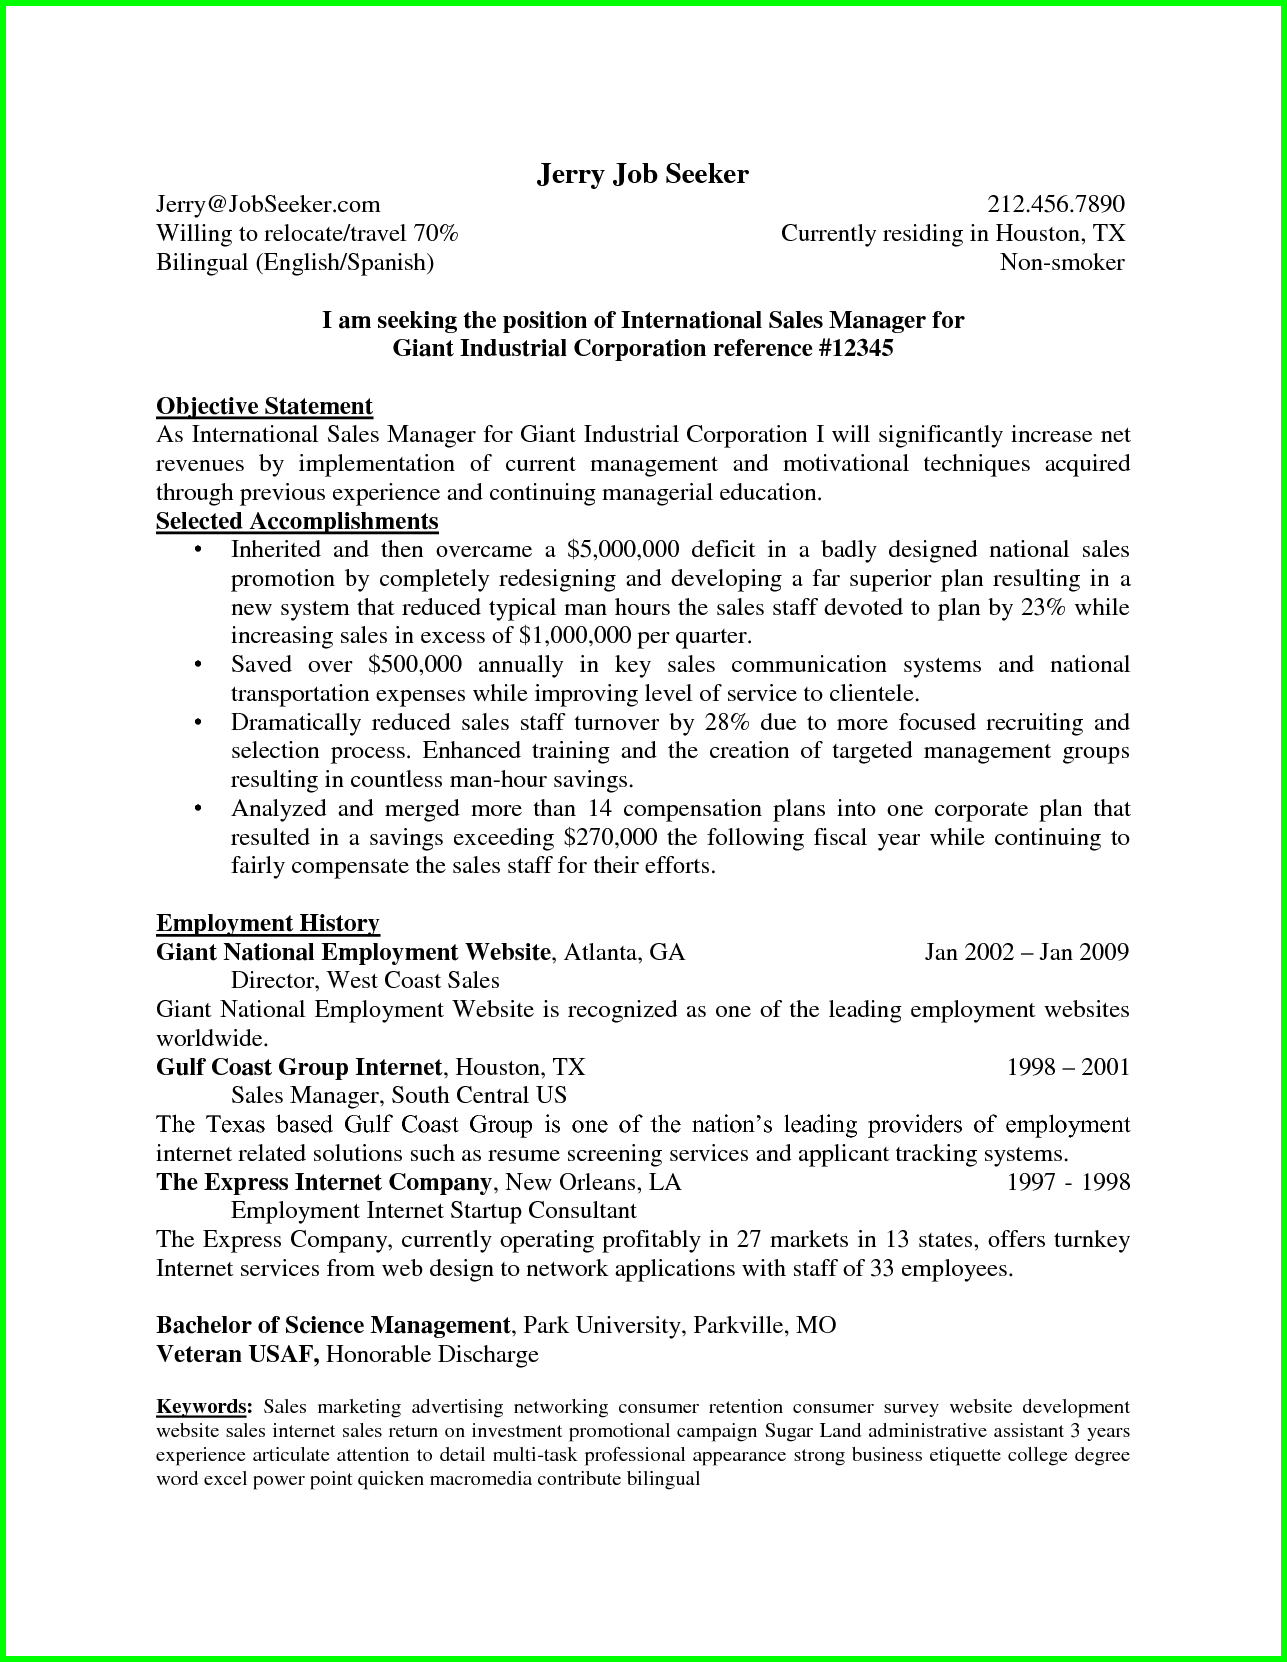 P Cover Letter Business Plan Cover Letter Business Plan Yazh Co - Business plan cover letter template